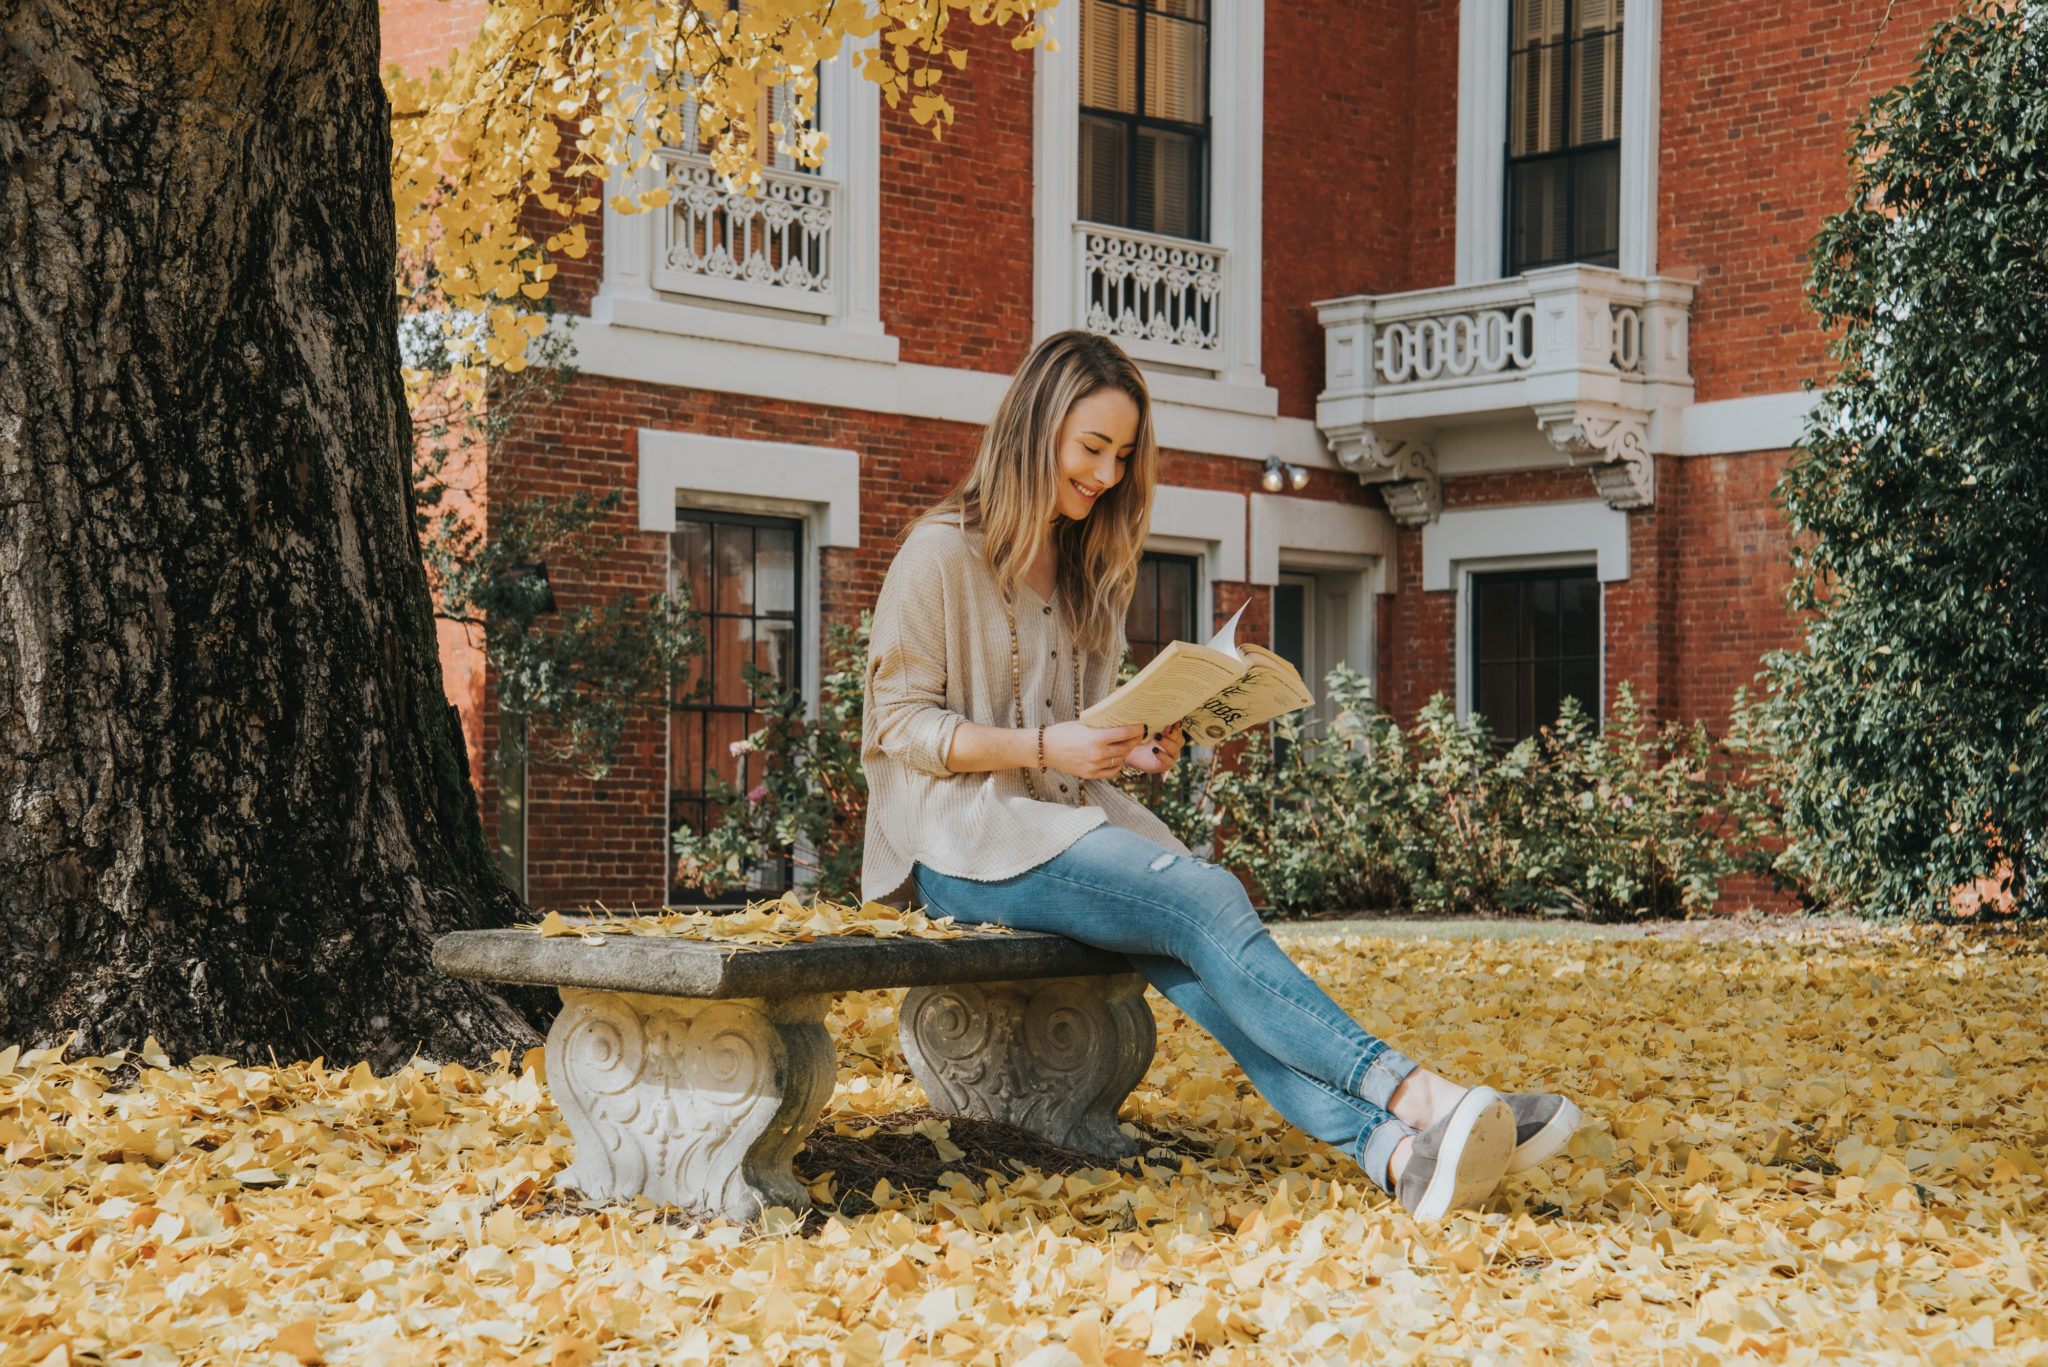 A student sits reading a book outside the Hay House.